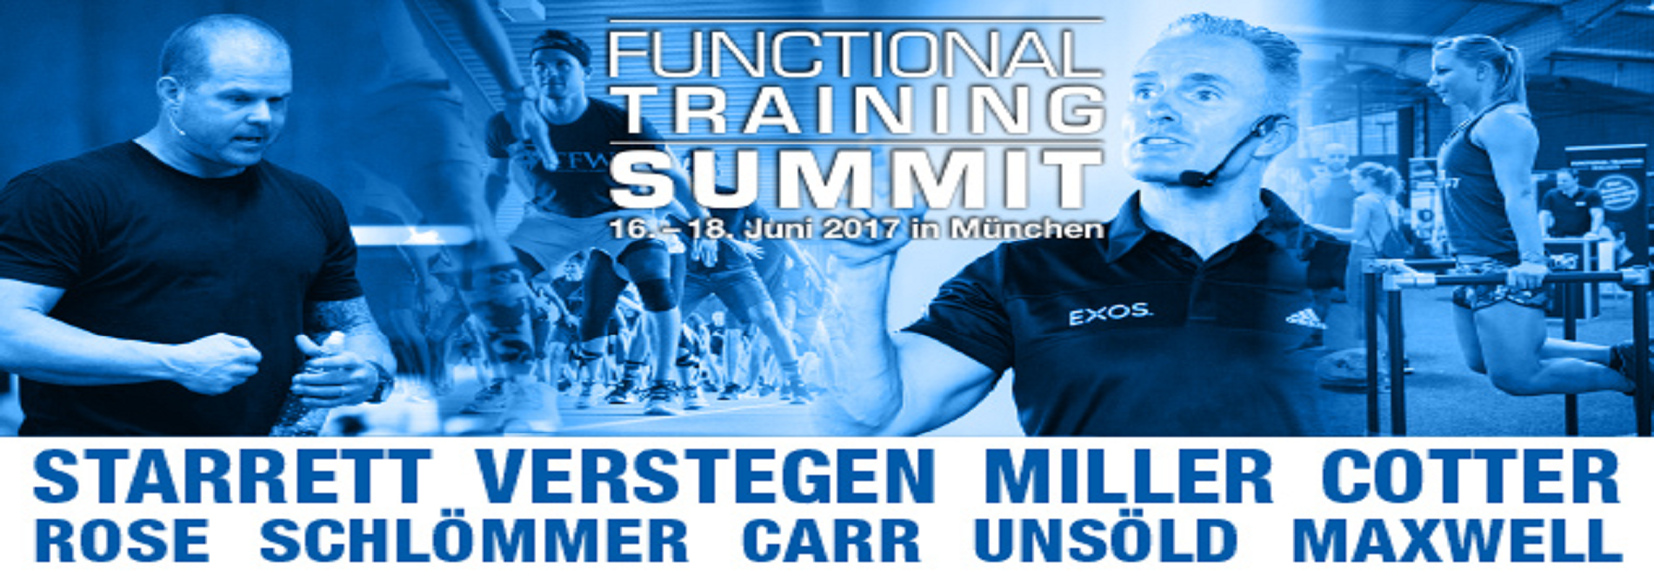 Functional Training, Summit, Functional Training,